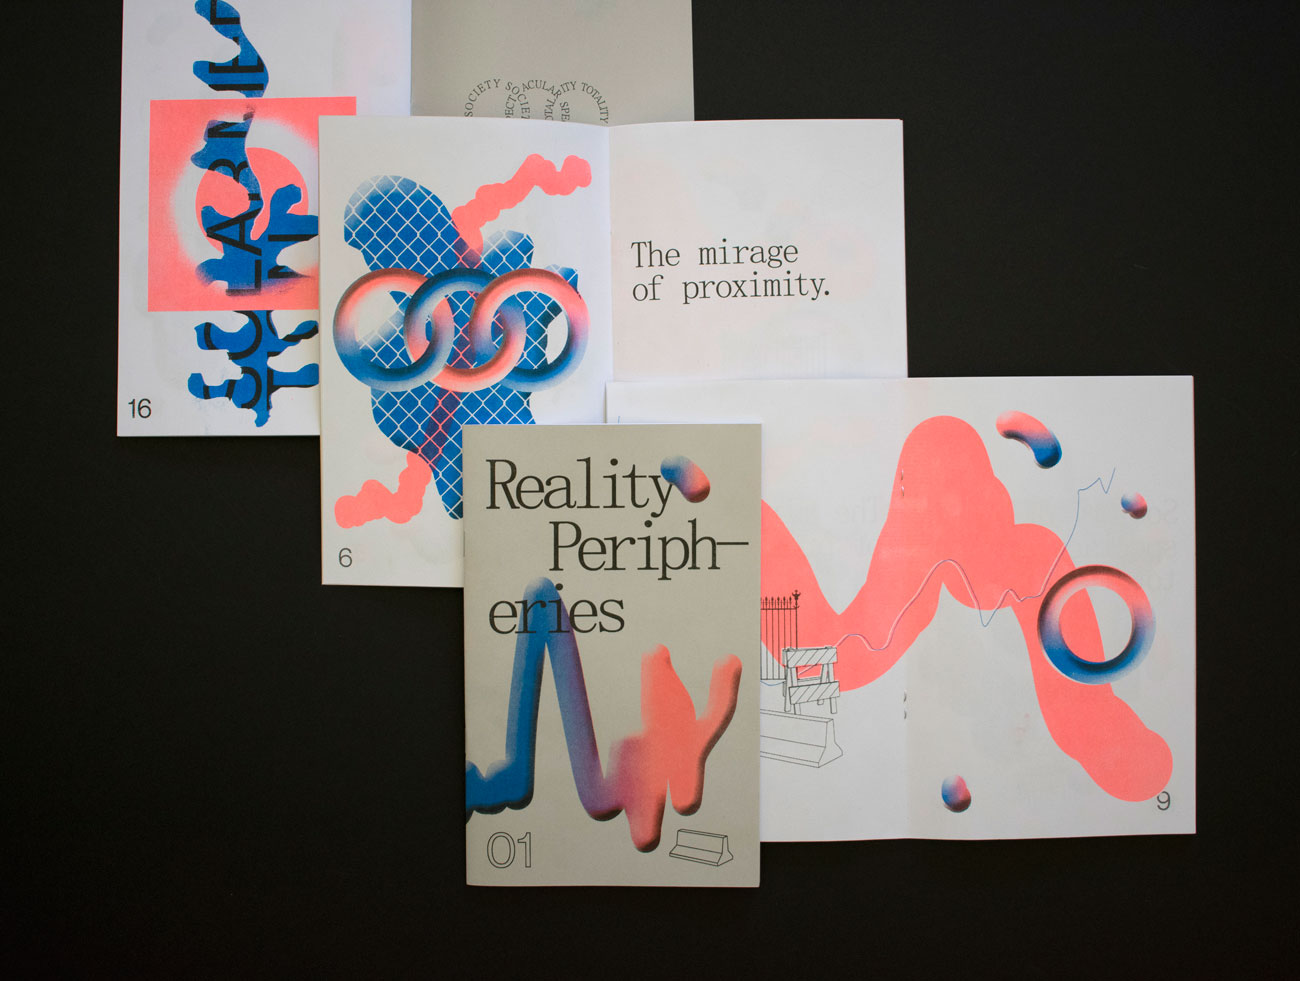 Reality Peripheries risograph publication by Drew Sisk, VCU MFA